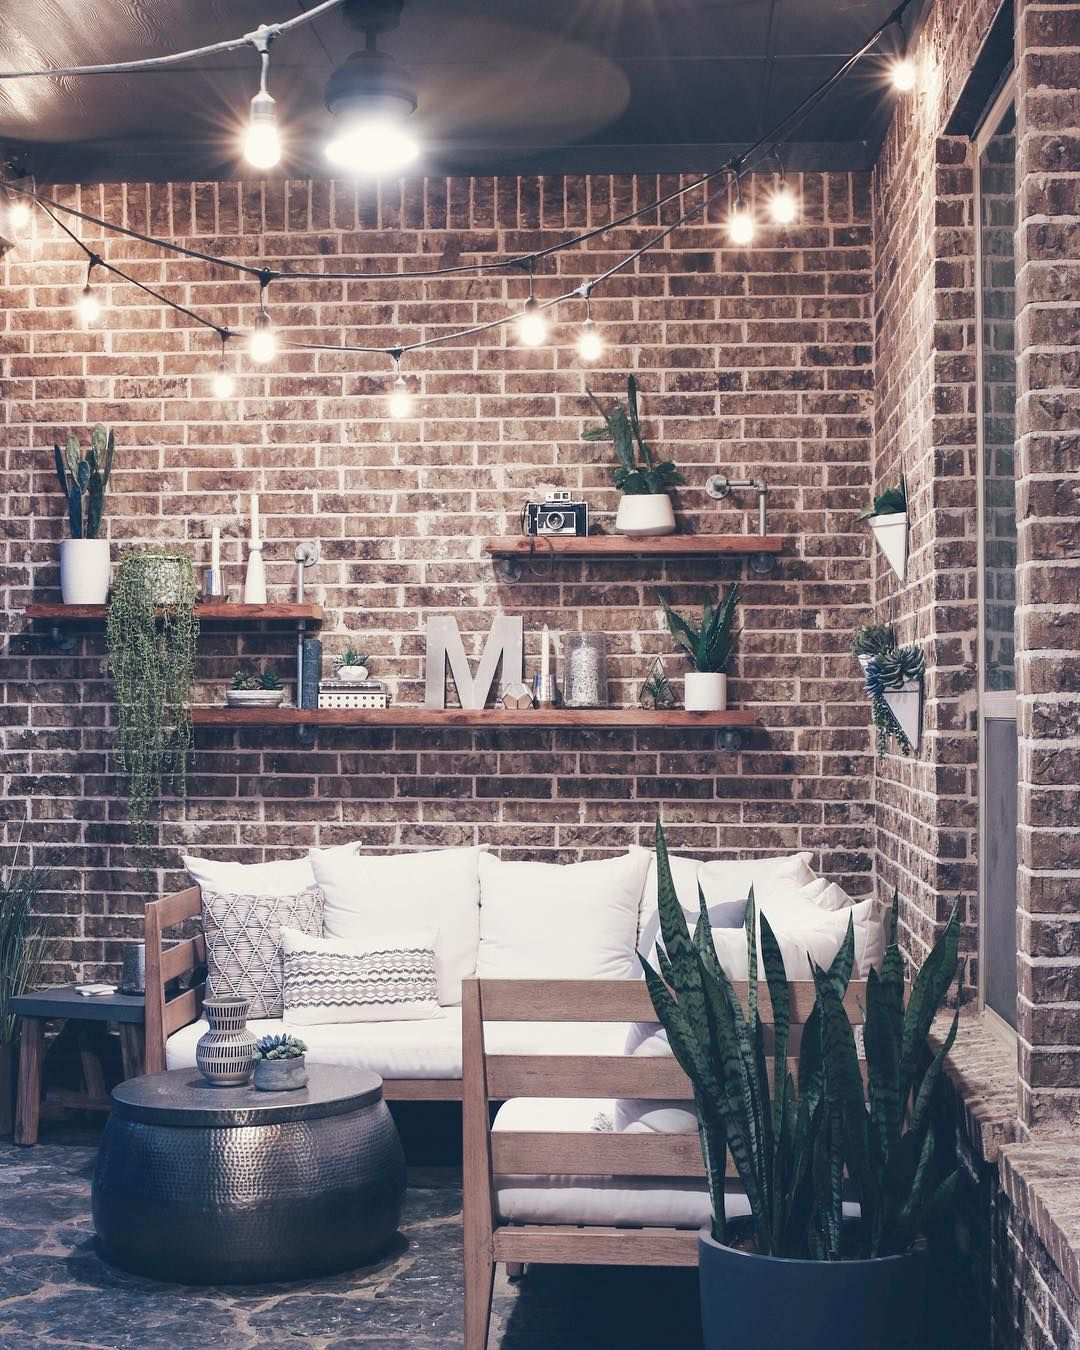 Outdoor Living Space West Elm Couch Brick Wall Industrial Wall